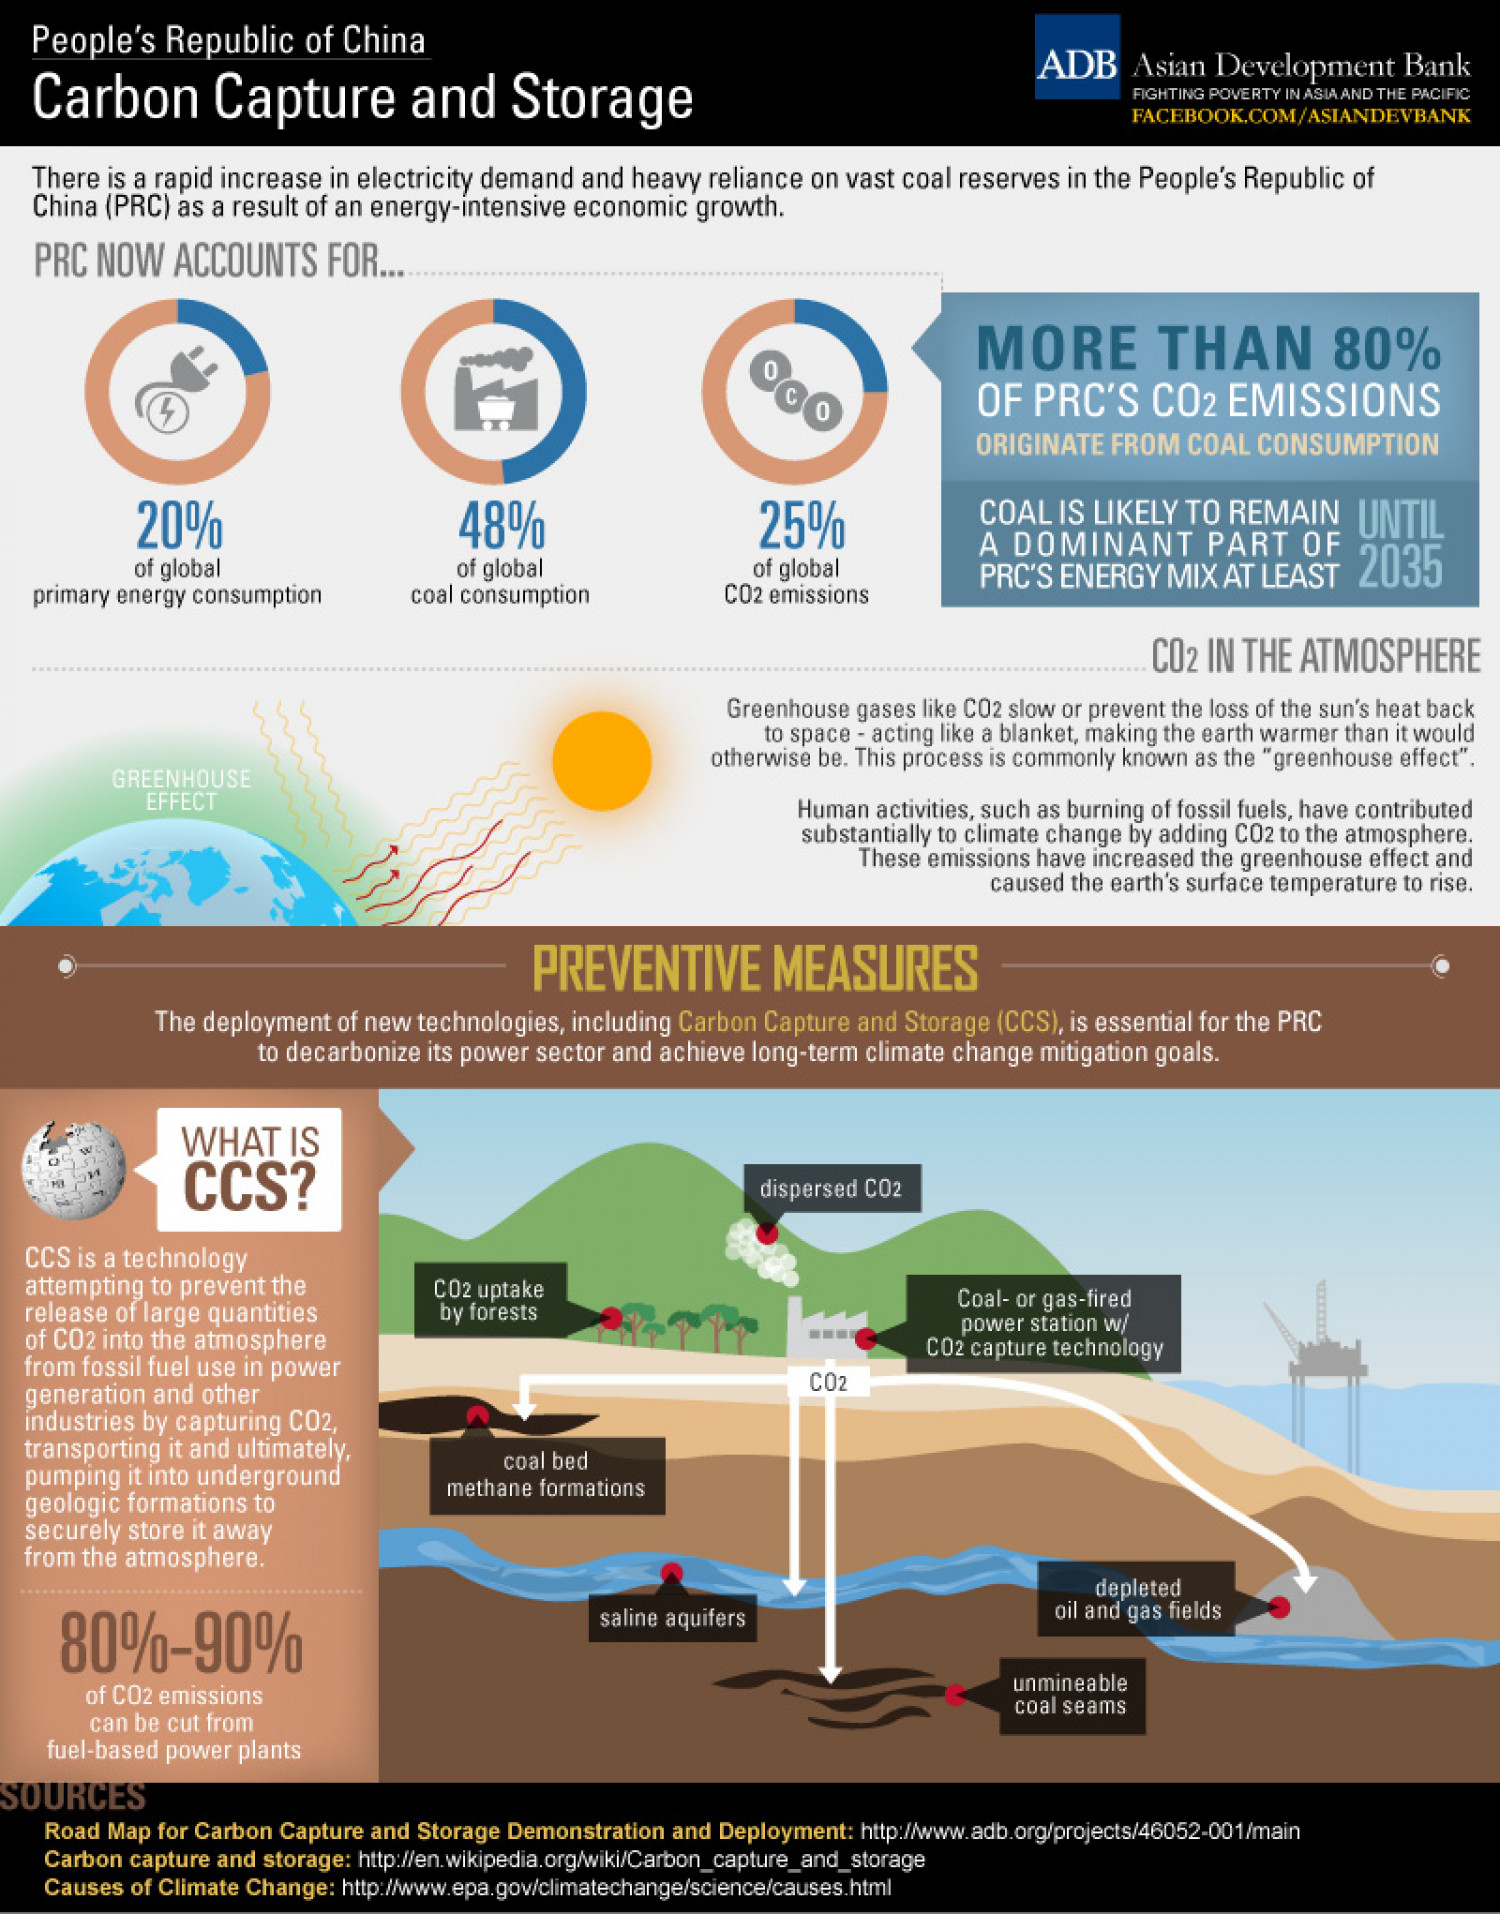 The PRC: Carbon Capture and Storage Infographic